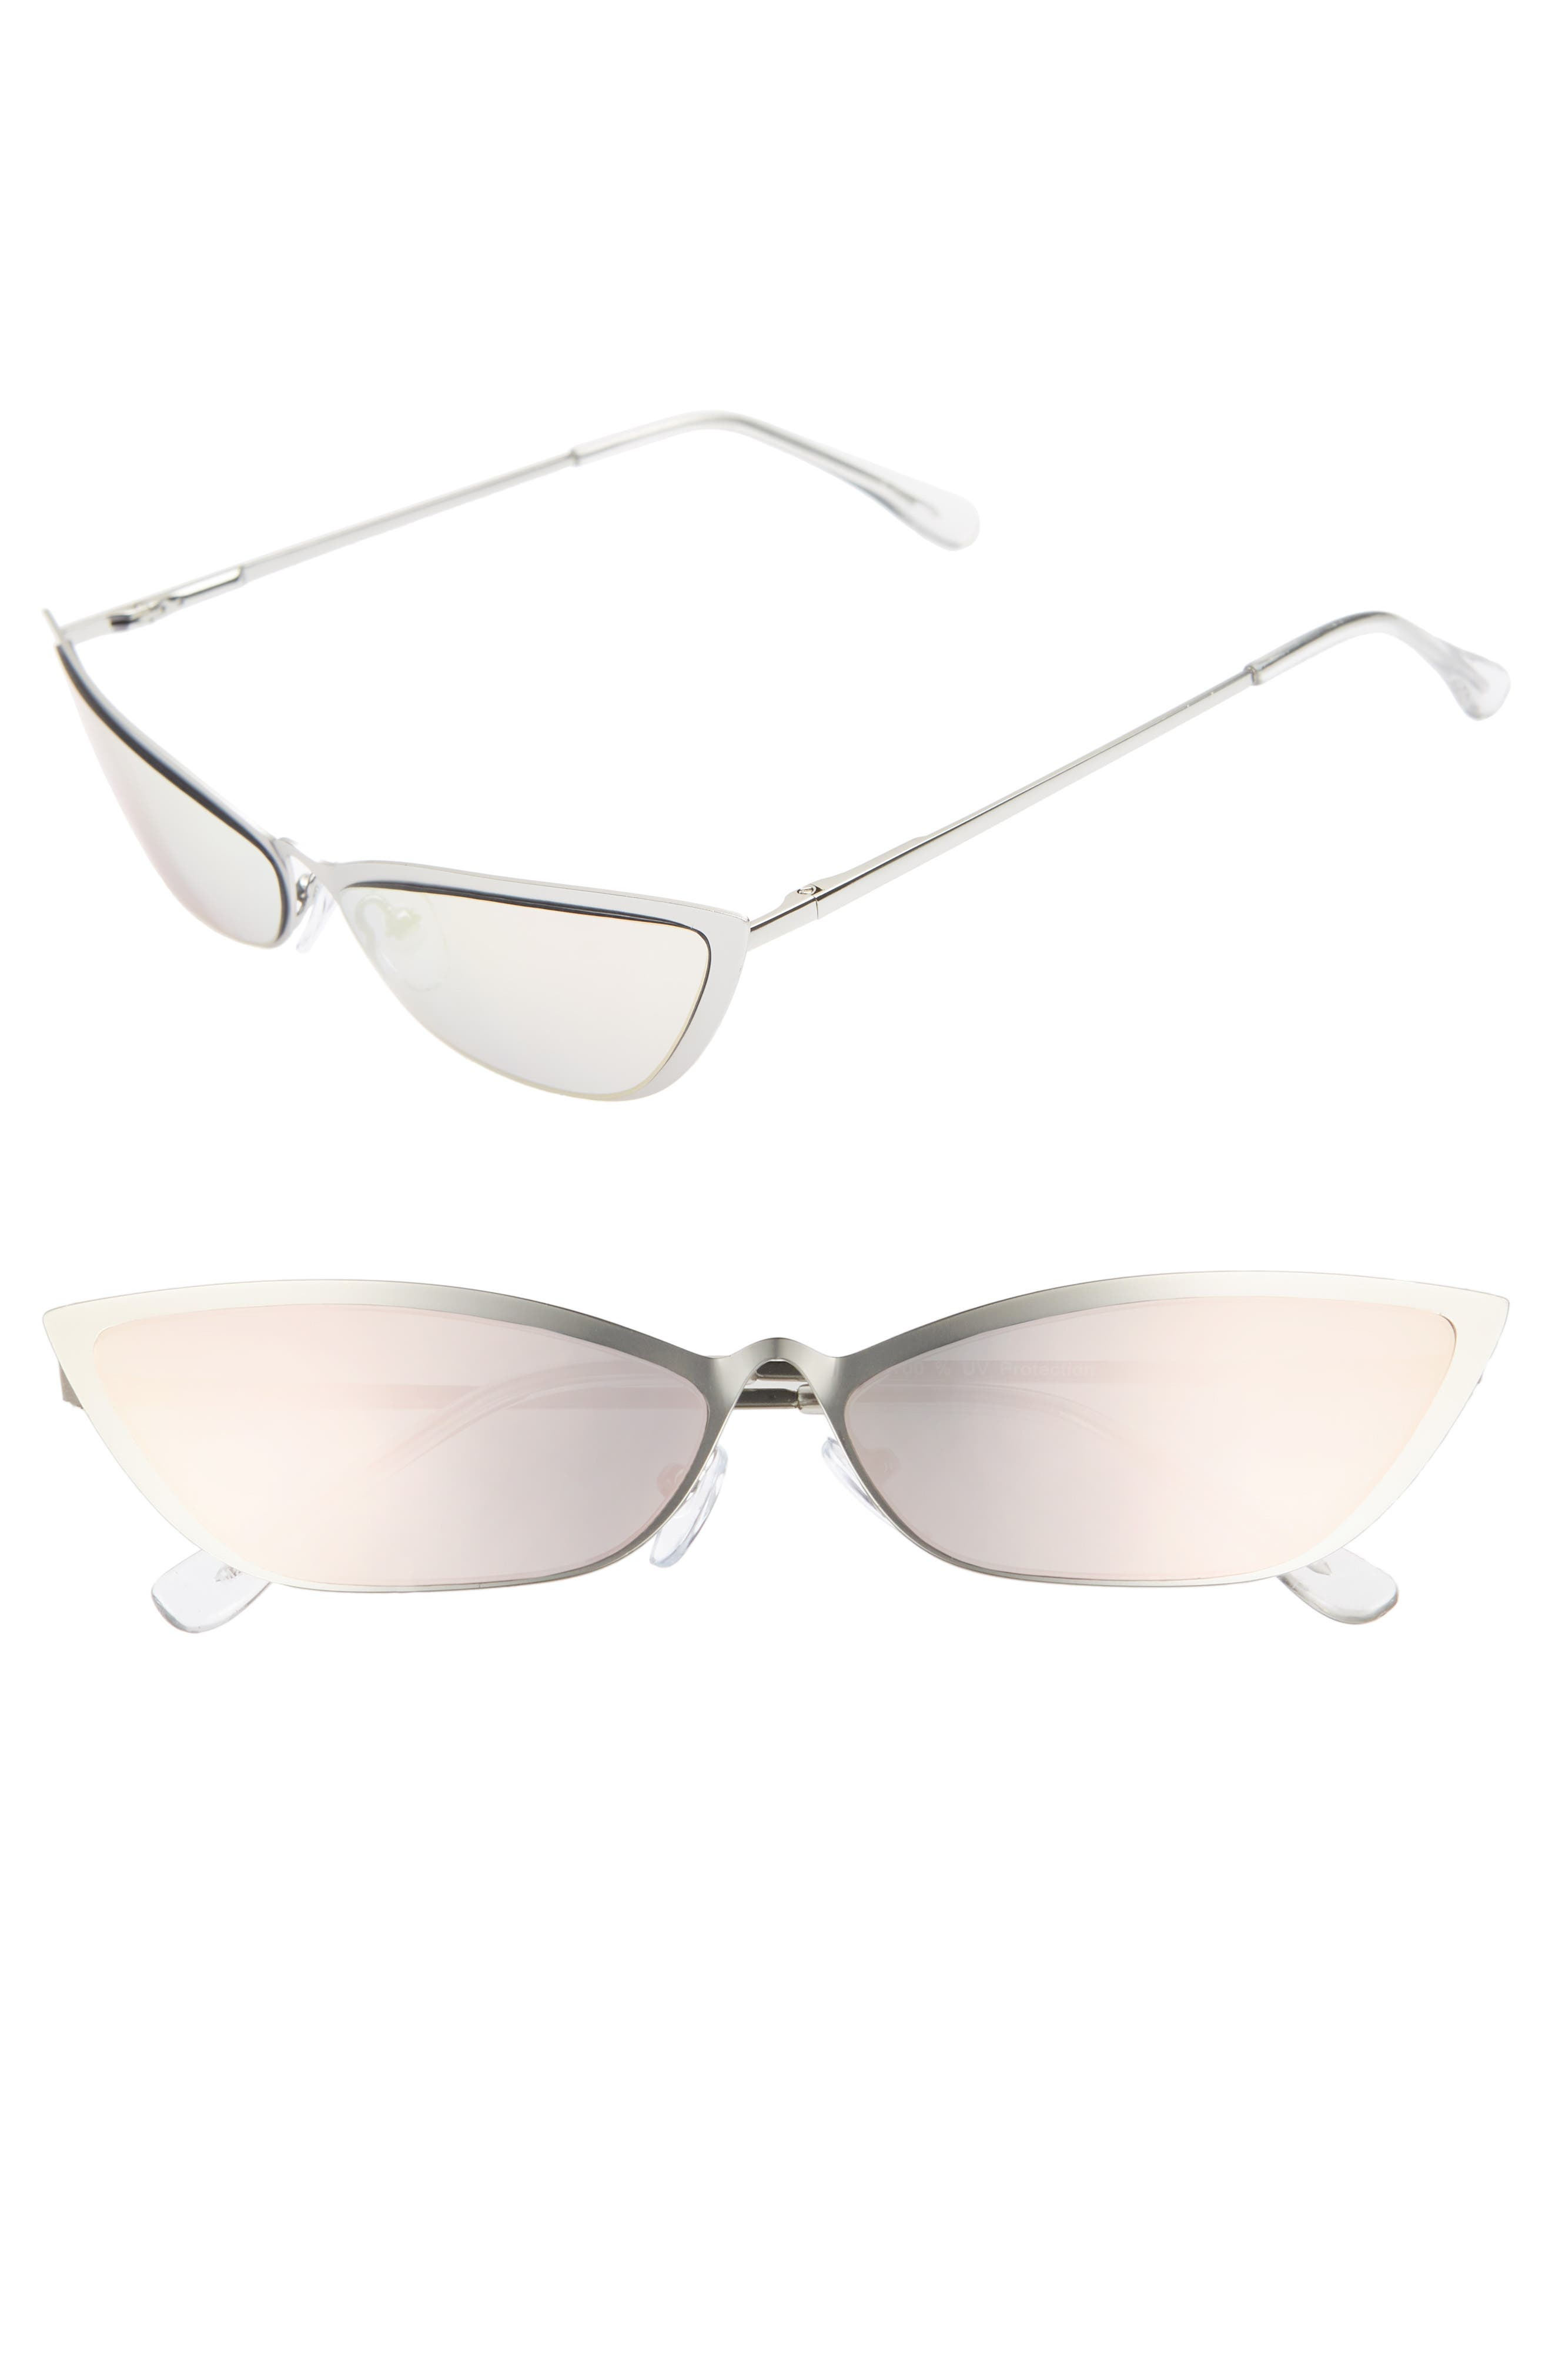 67mm Mirror Cat Eye Sunglasses,                         Main,                         color, SILVER/ PINK